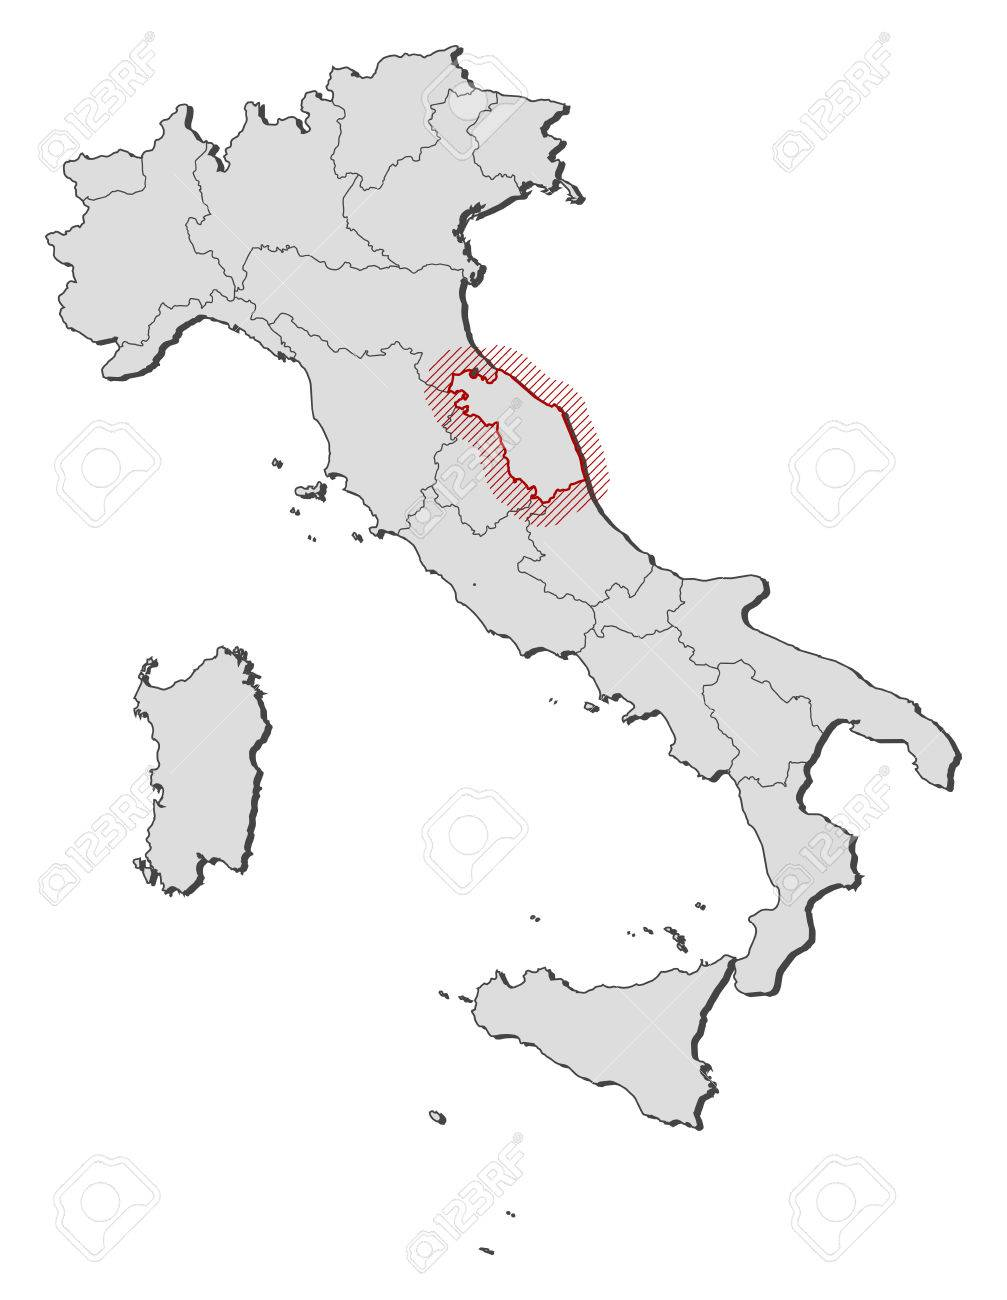 Map Of Italy With The Provinces Marche Is Highlighted By A Hatching